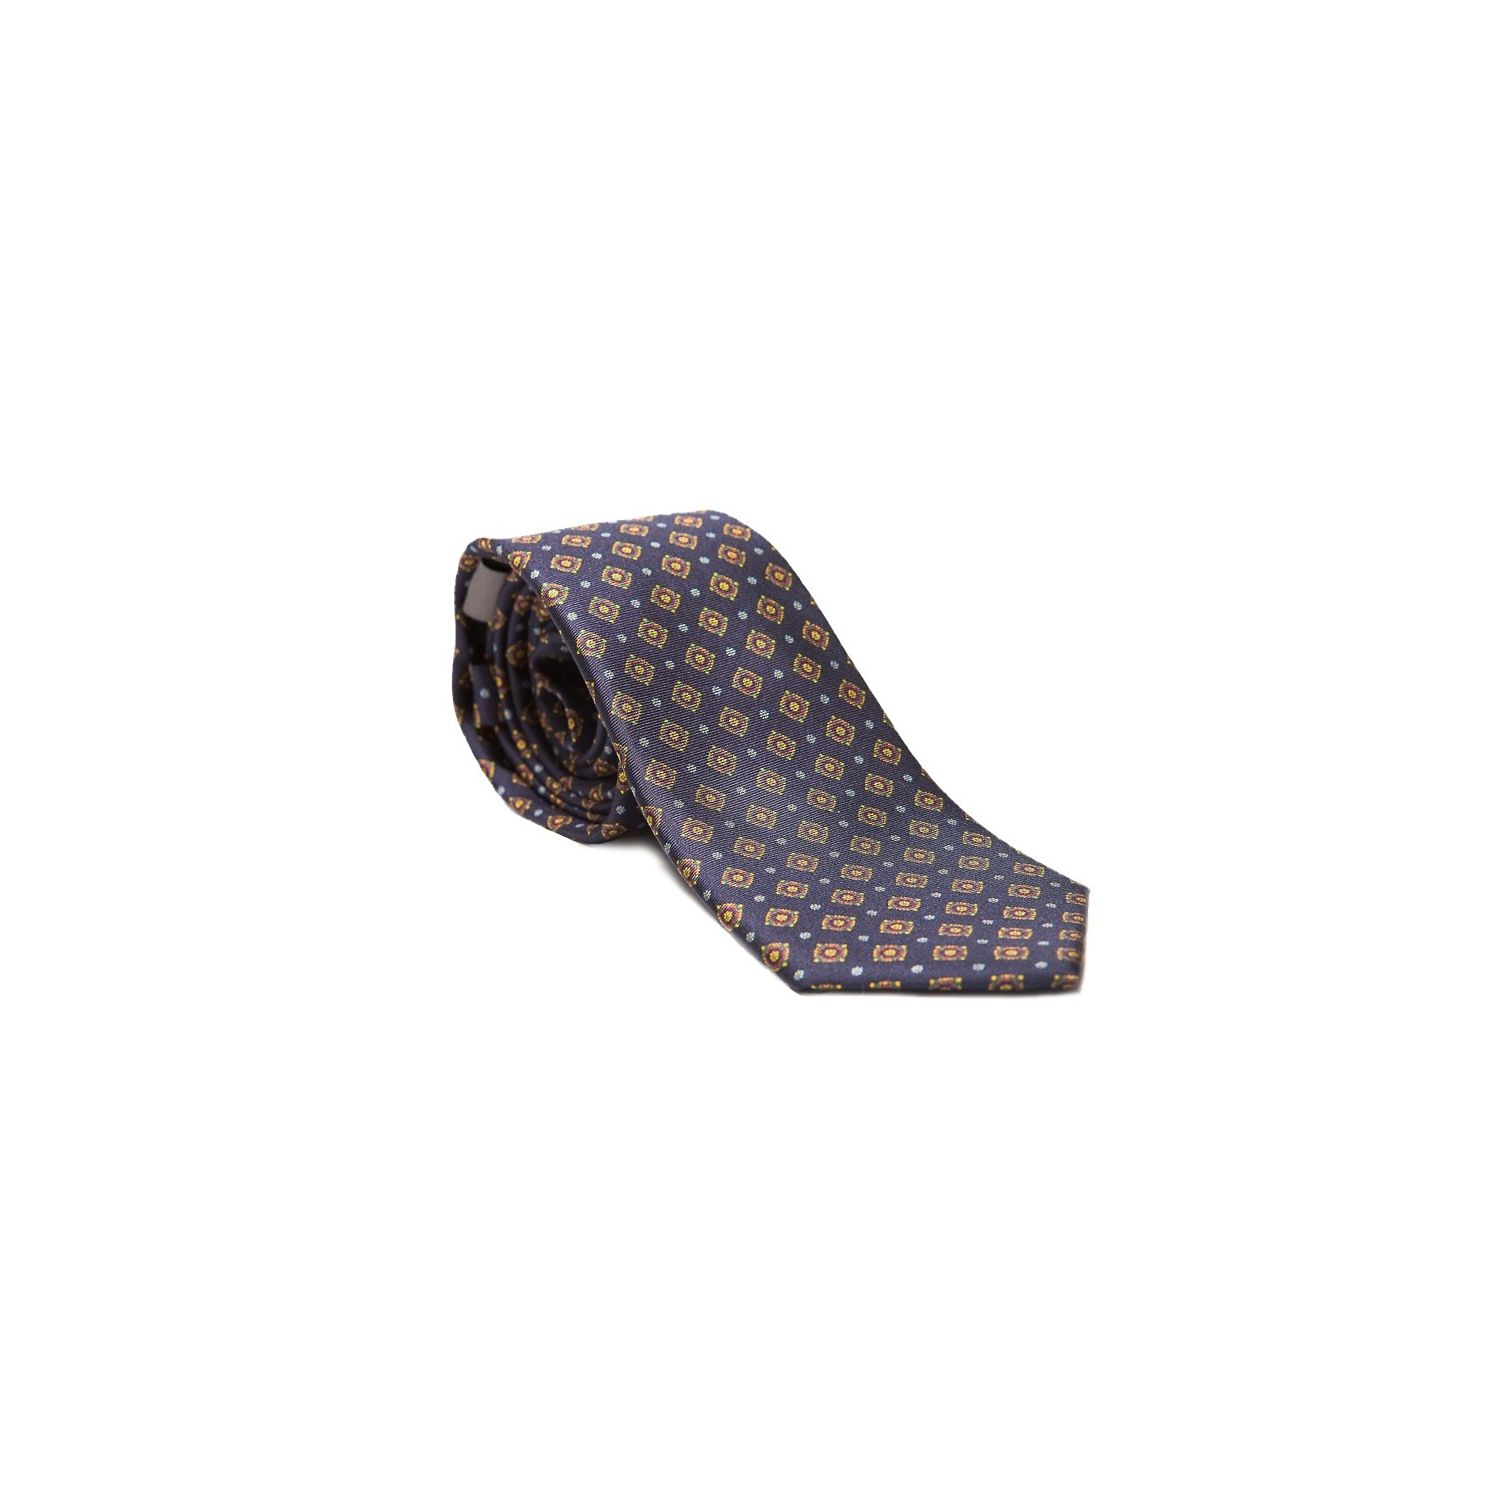 Laura Biagiotti tie out of office navy